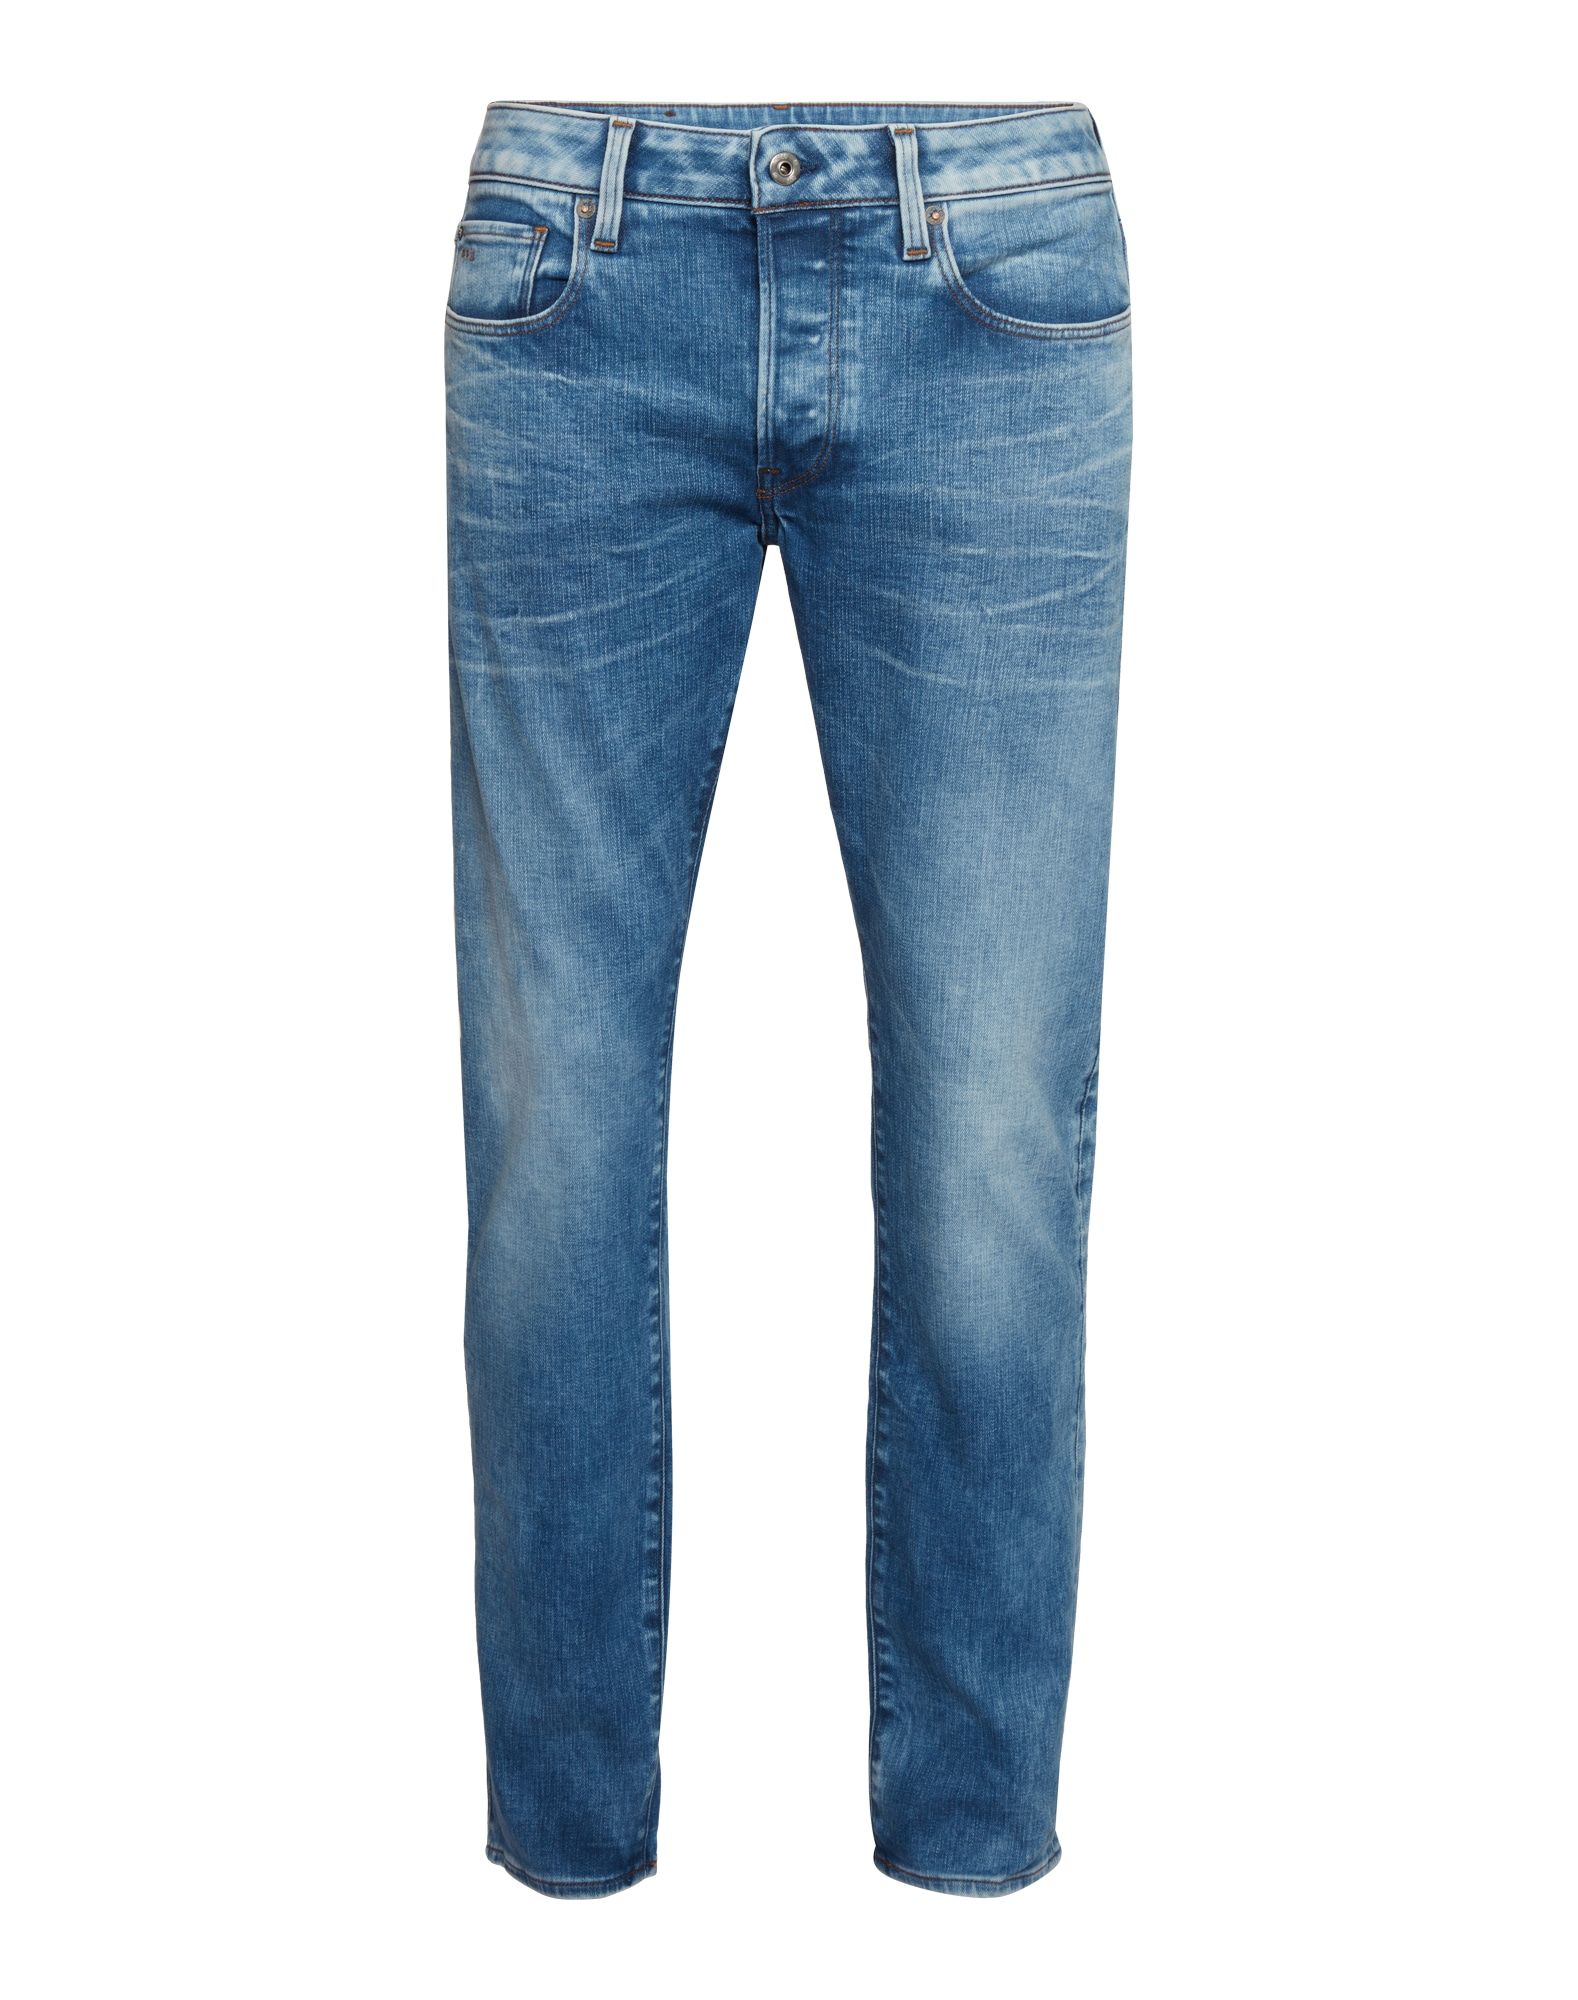 G-STAR RAW Heren Jeans 3301 Slim blue denim